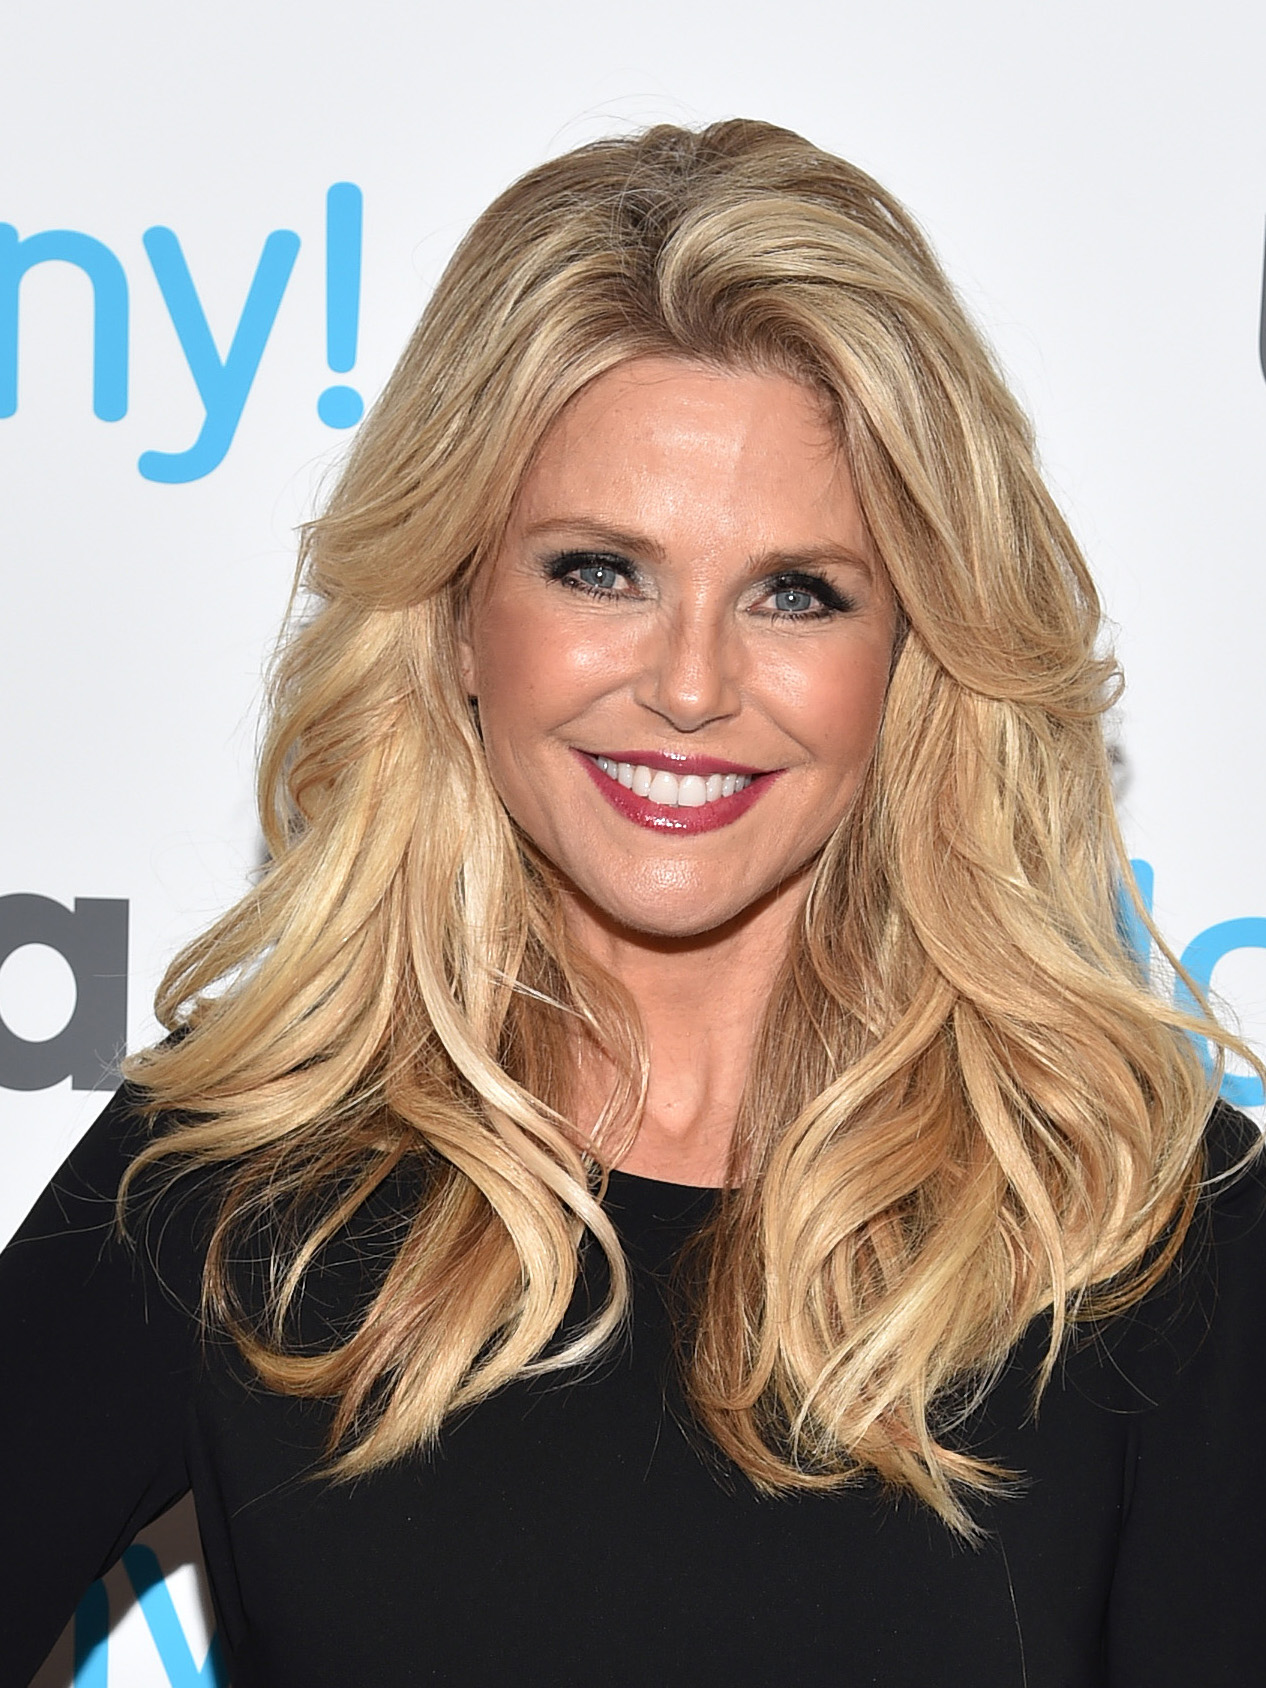 How Old Is Christie Brinkley She Looks Amazing For Her Age